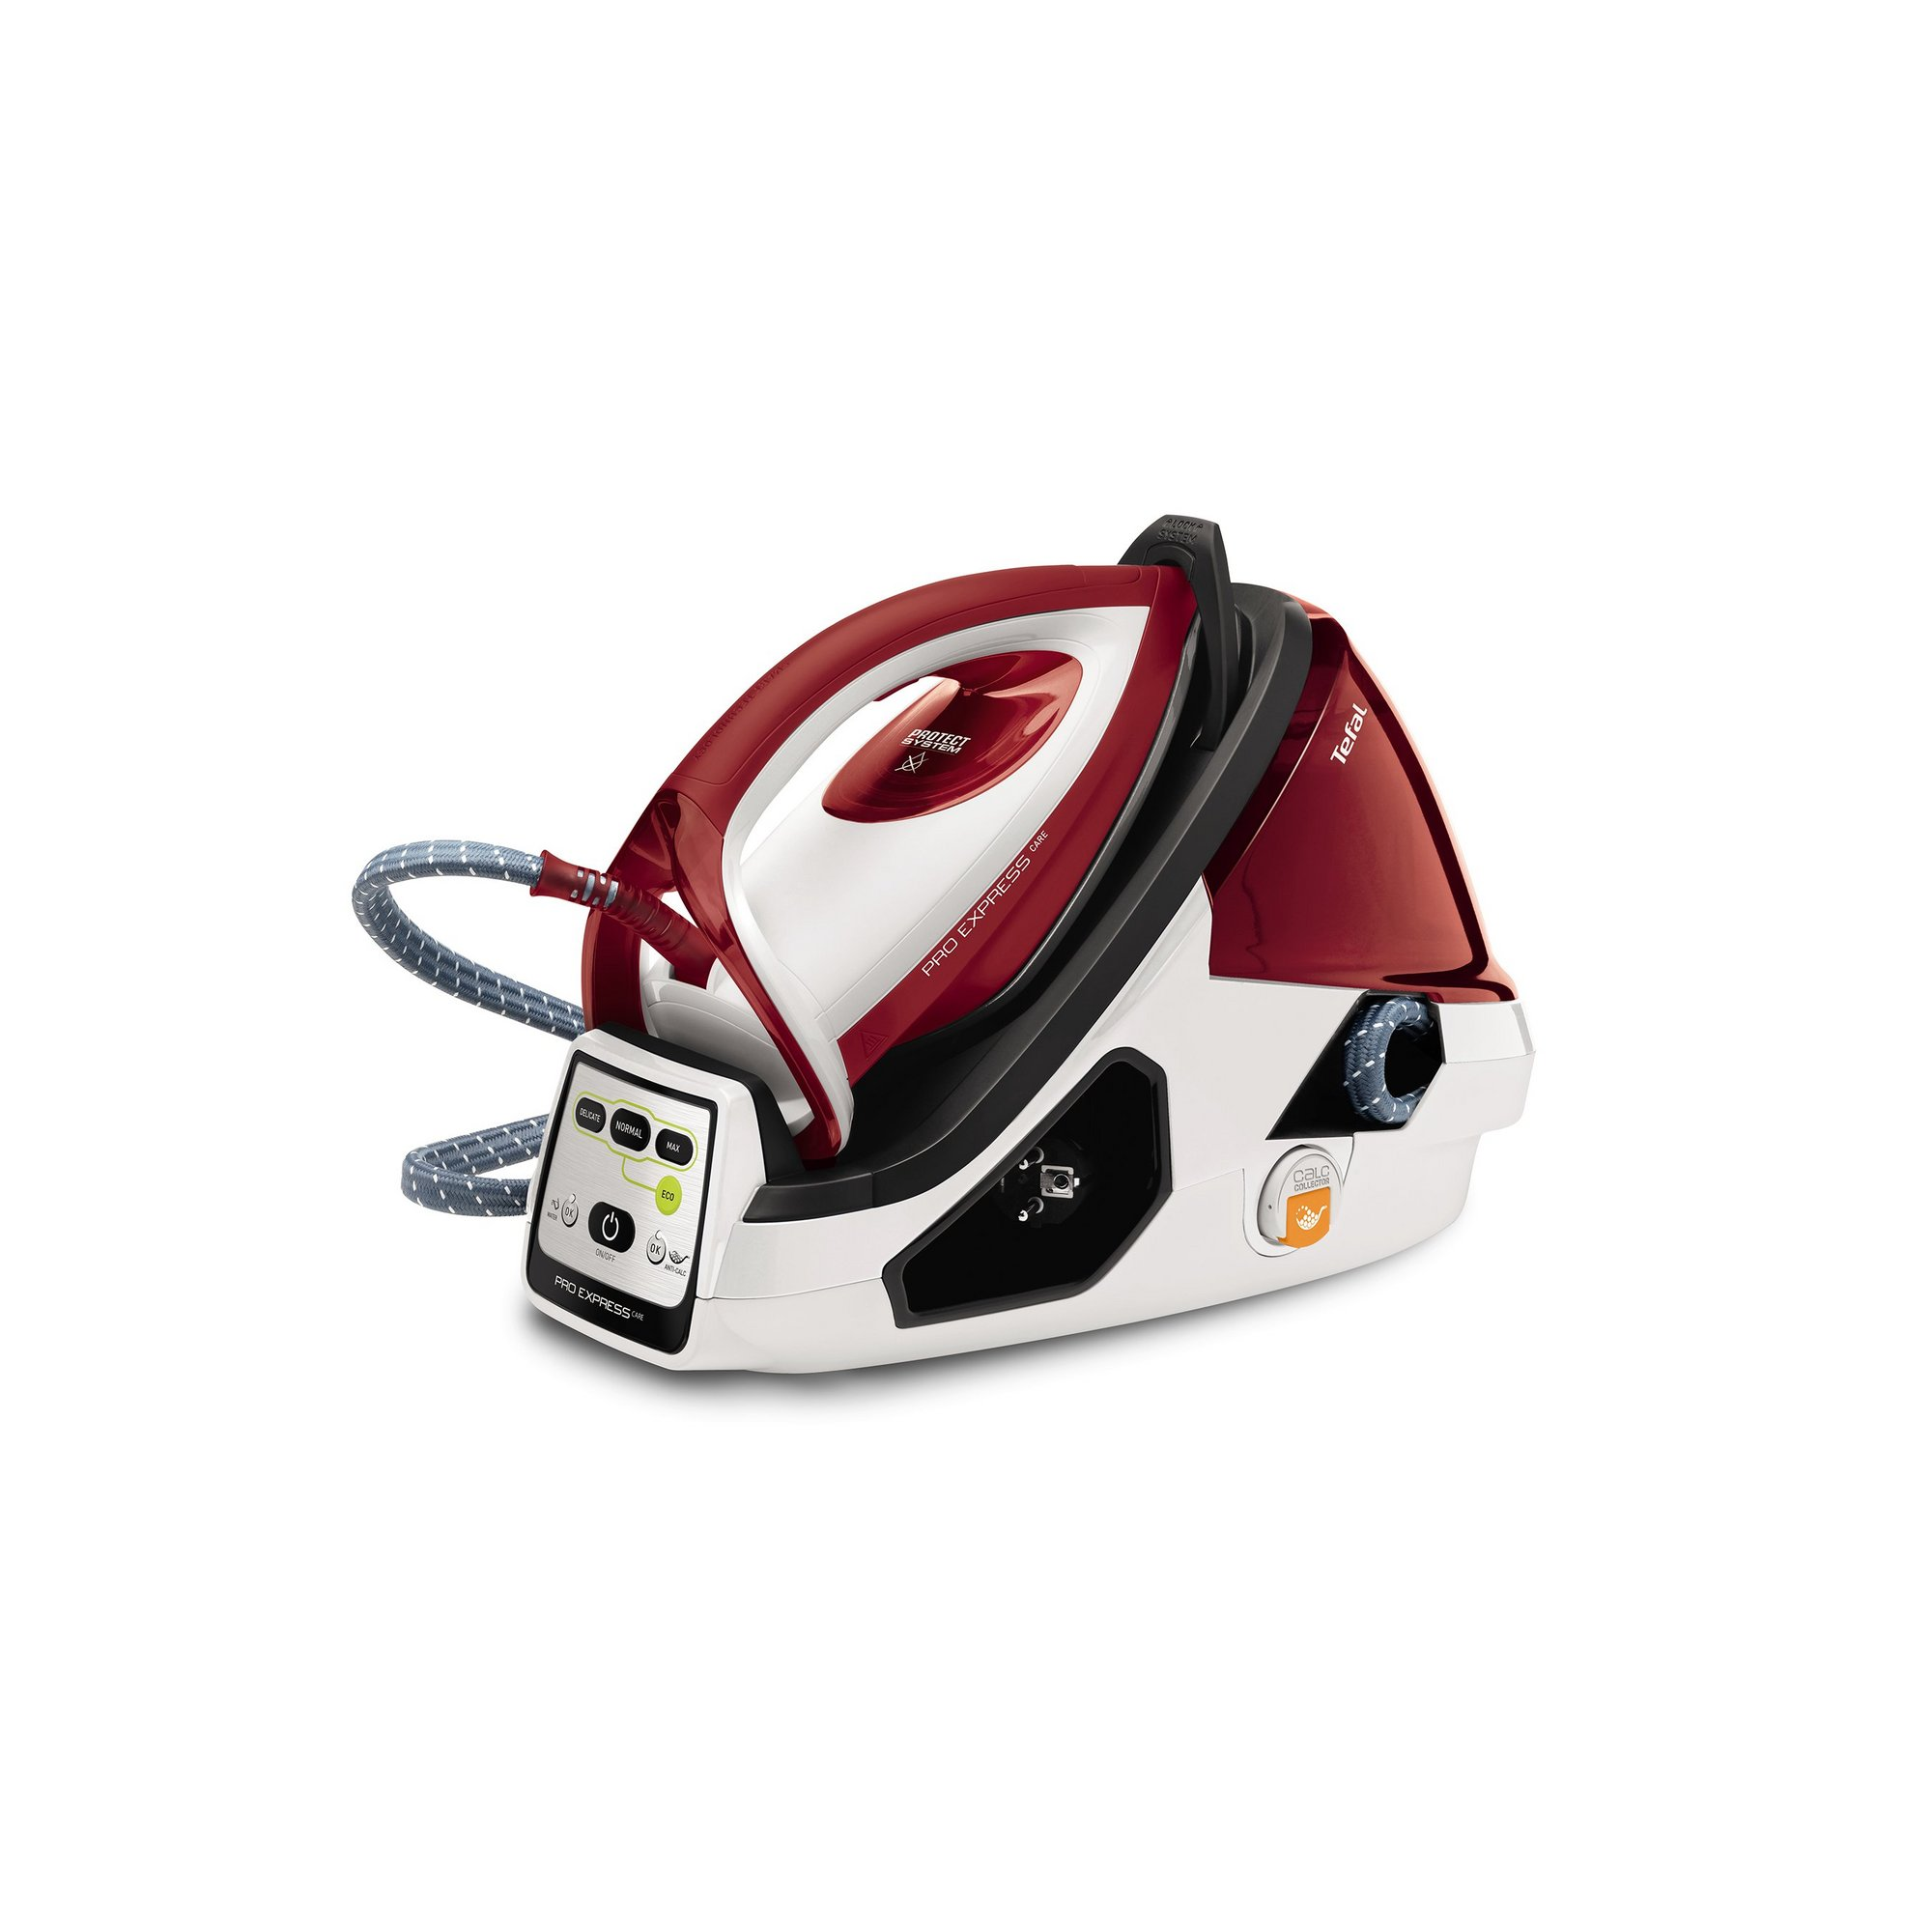 Image of Tefal Pro Express Care Anti Scale Steam Generator